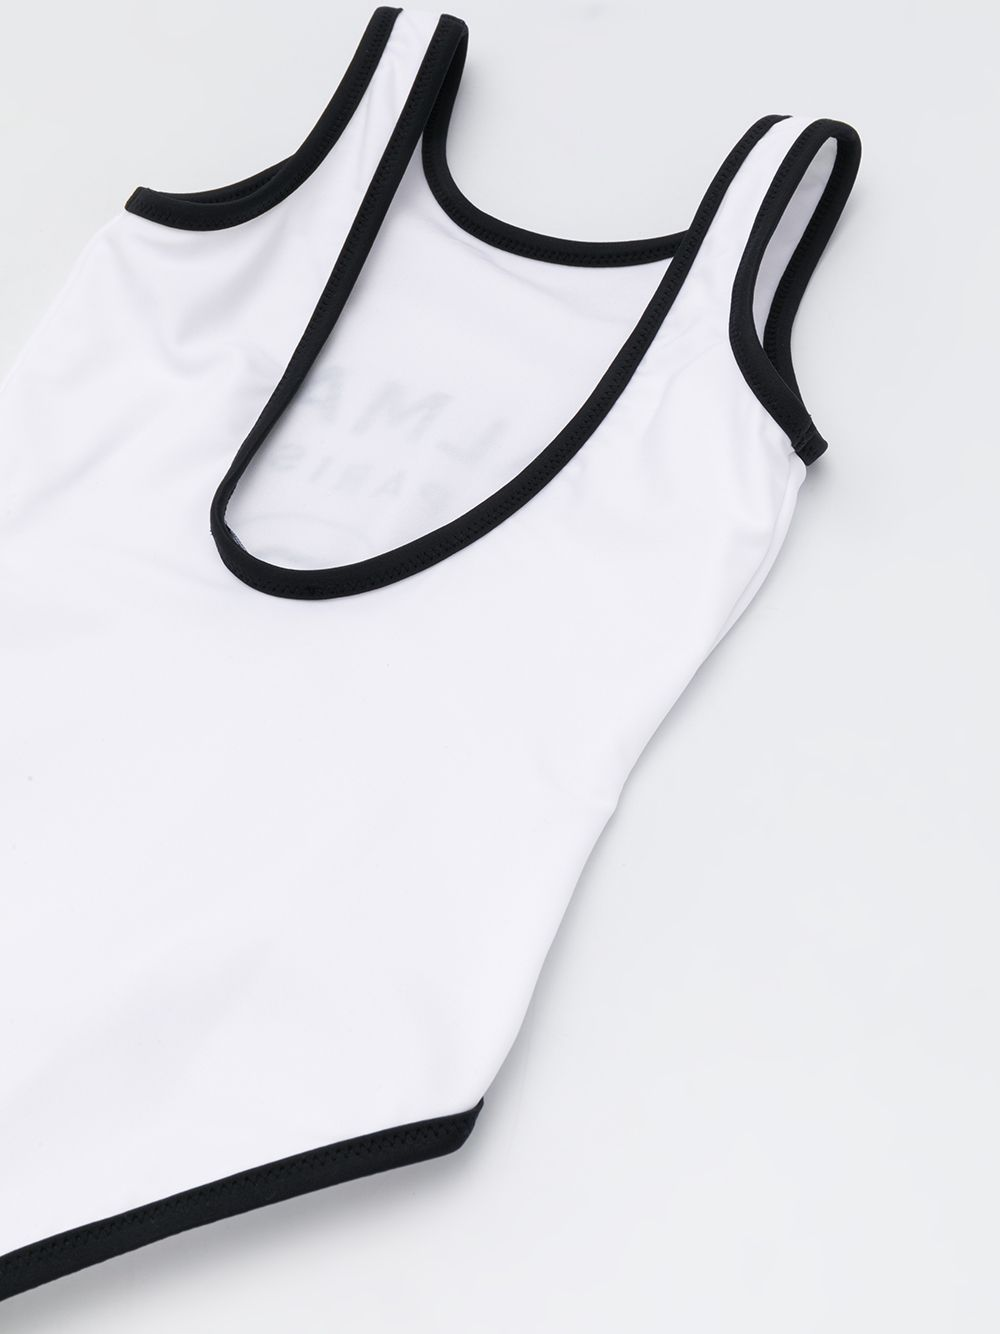 BALMAIN KIDS logo swim suit white - Maison De Fashion